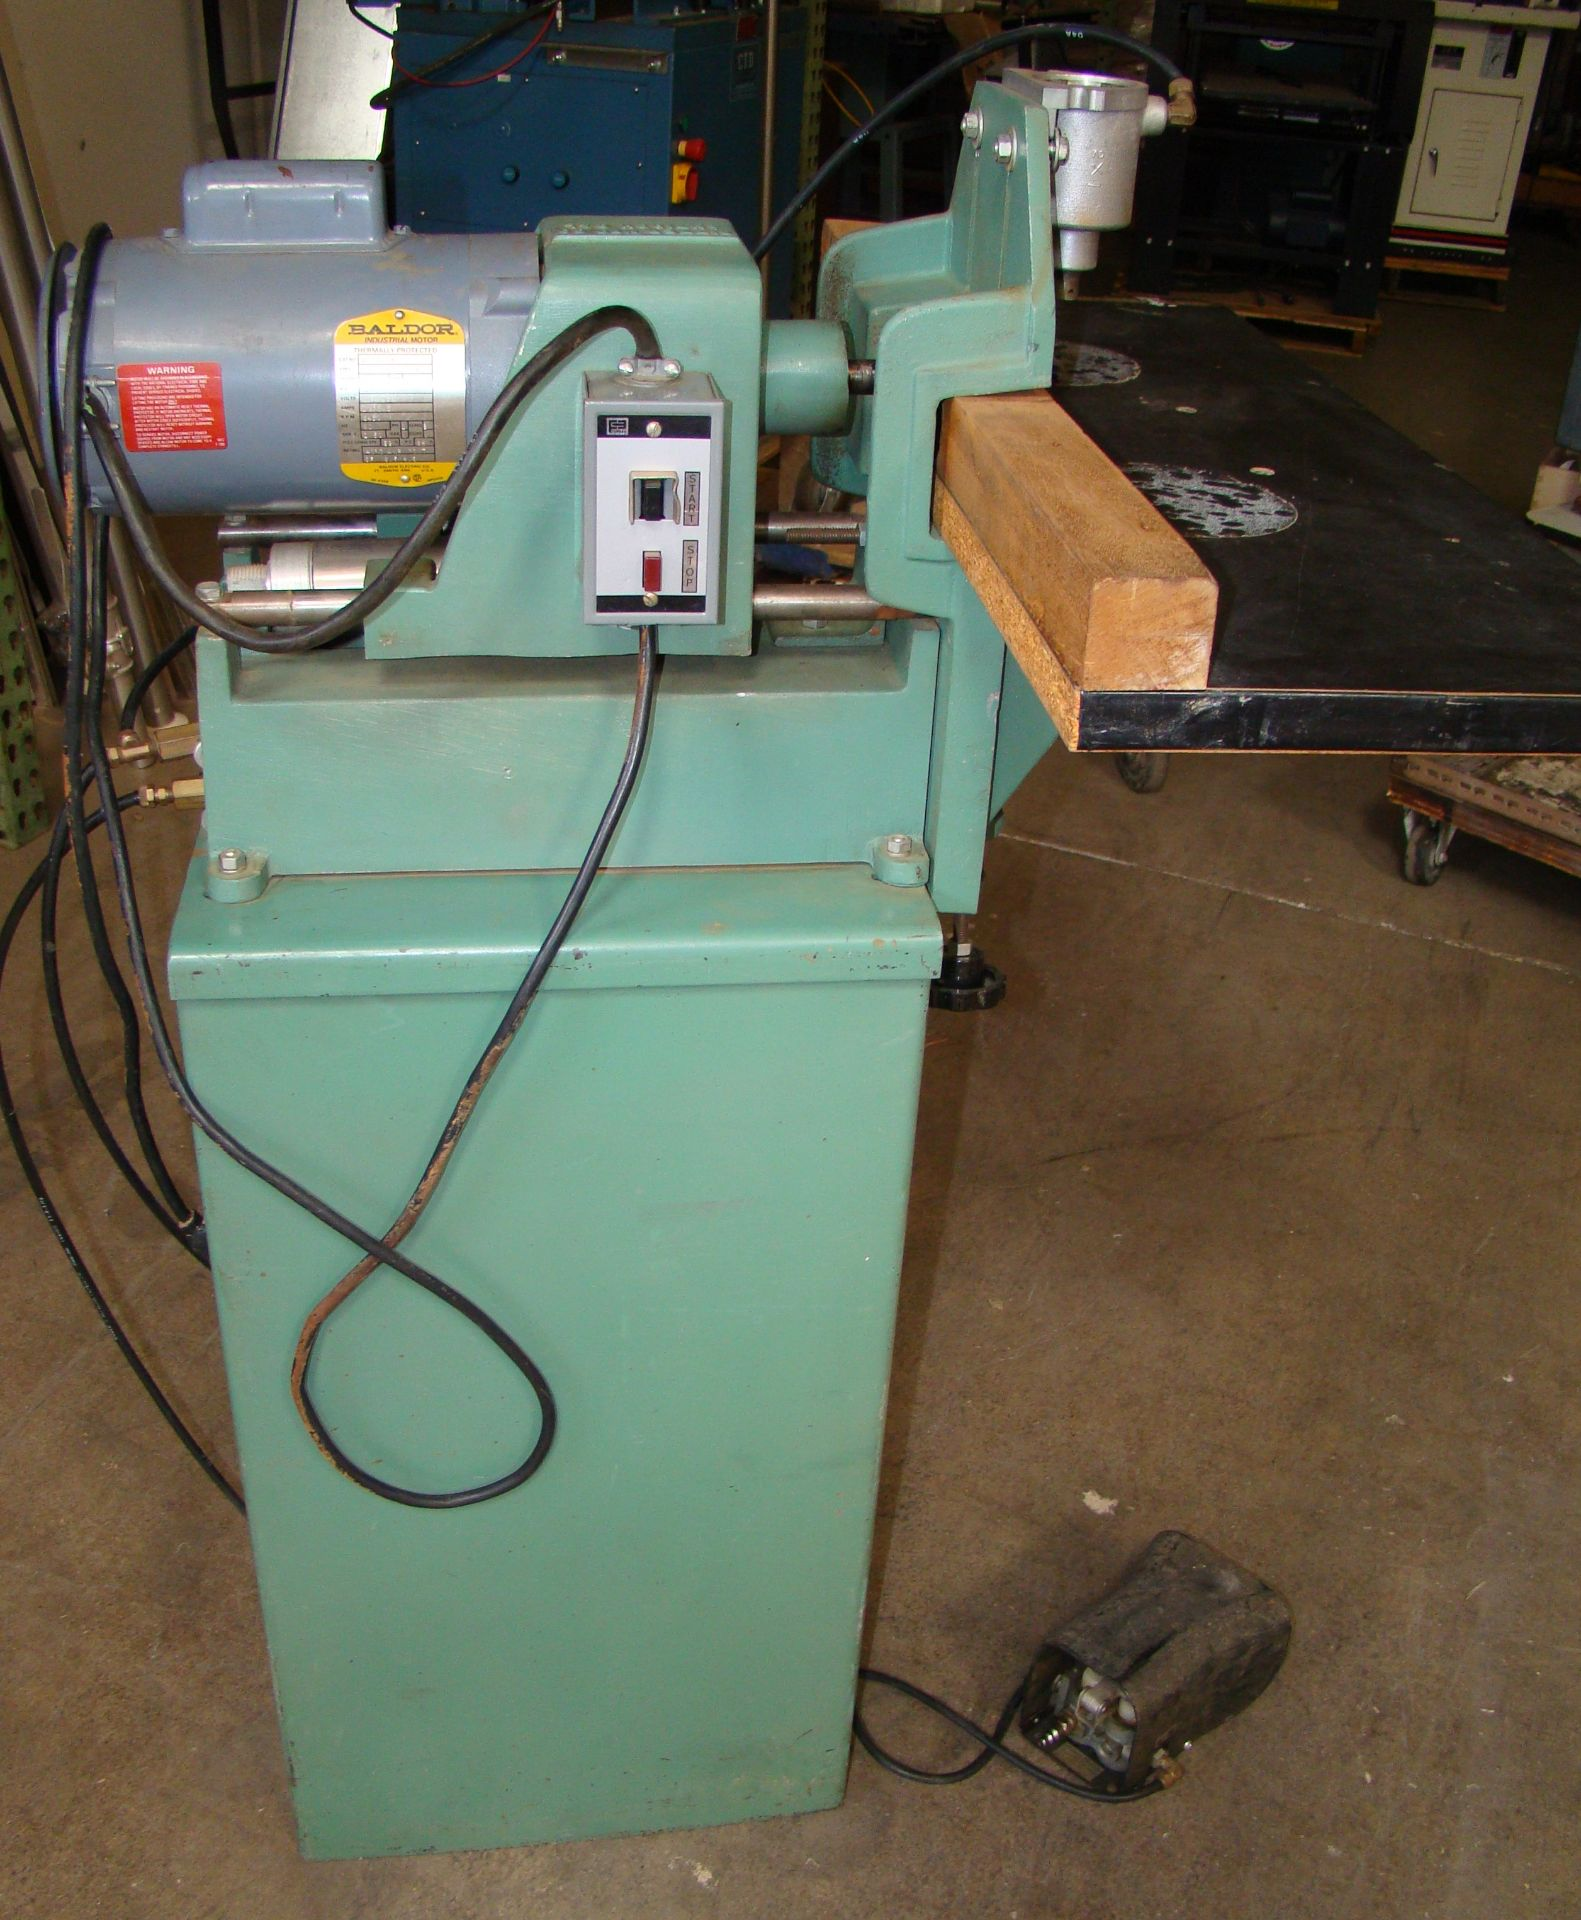 Ritter 1 Spindle Boring Machine, Pneumatic Foot Pedal, Baldor 3/4 HP 115/230 Volts 1 Phase Motor - Image 5 of 7